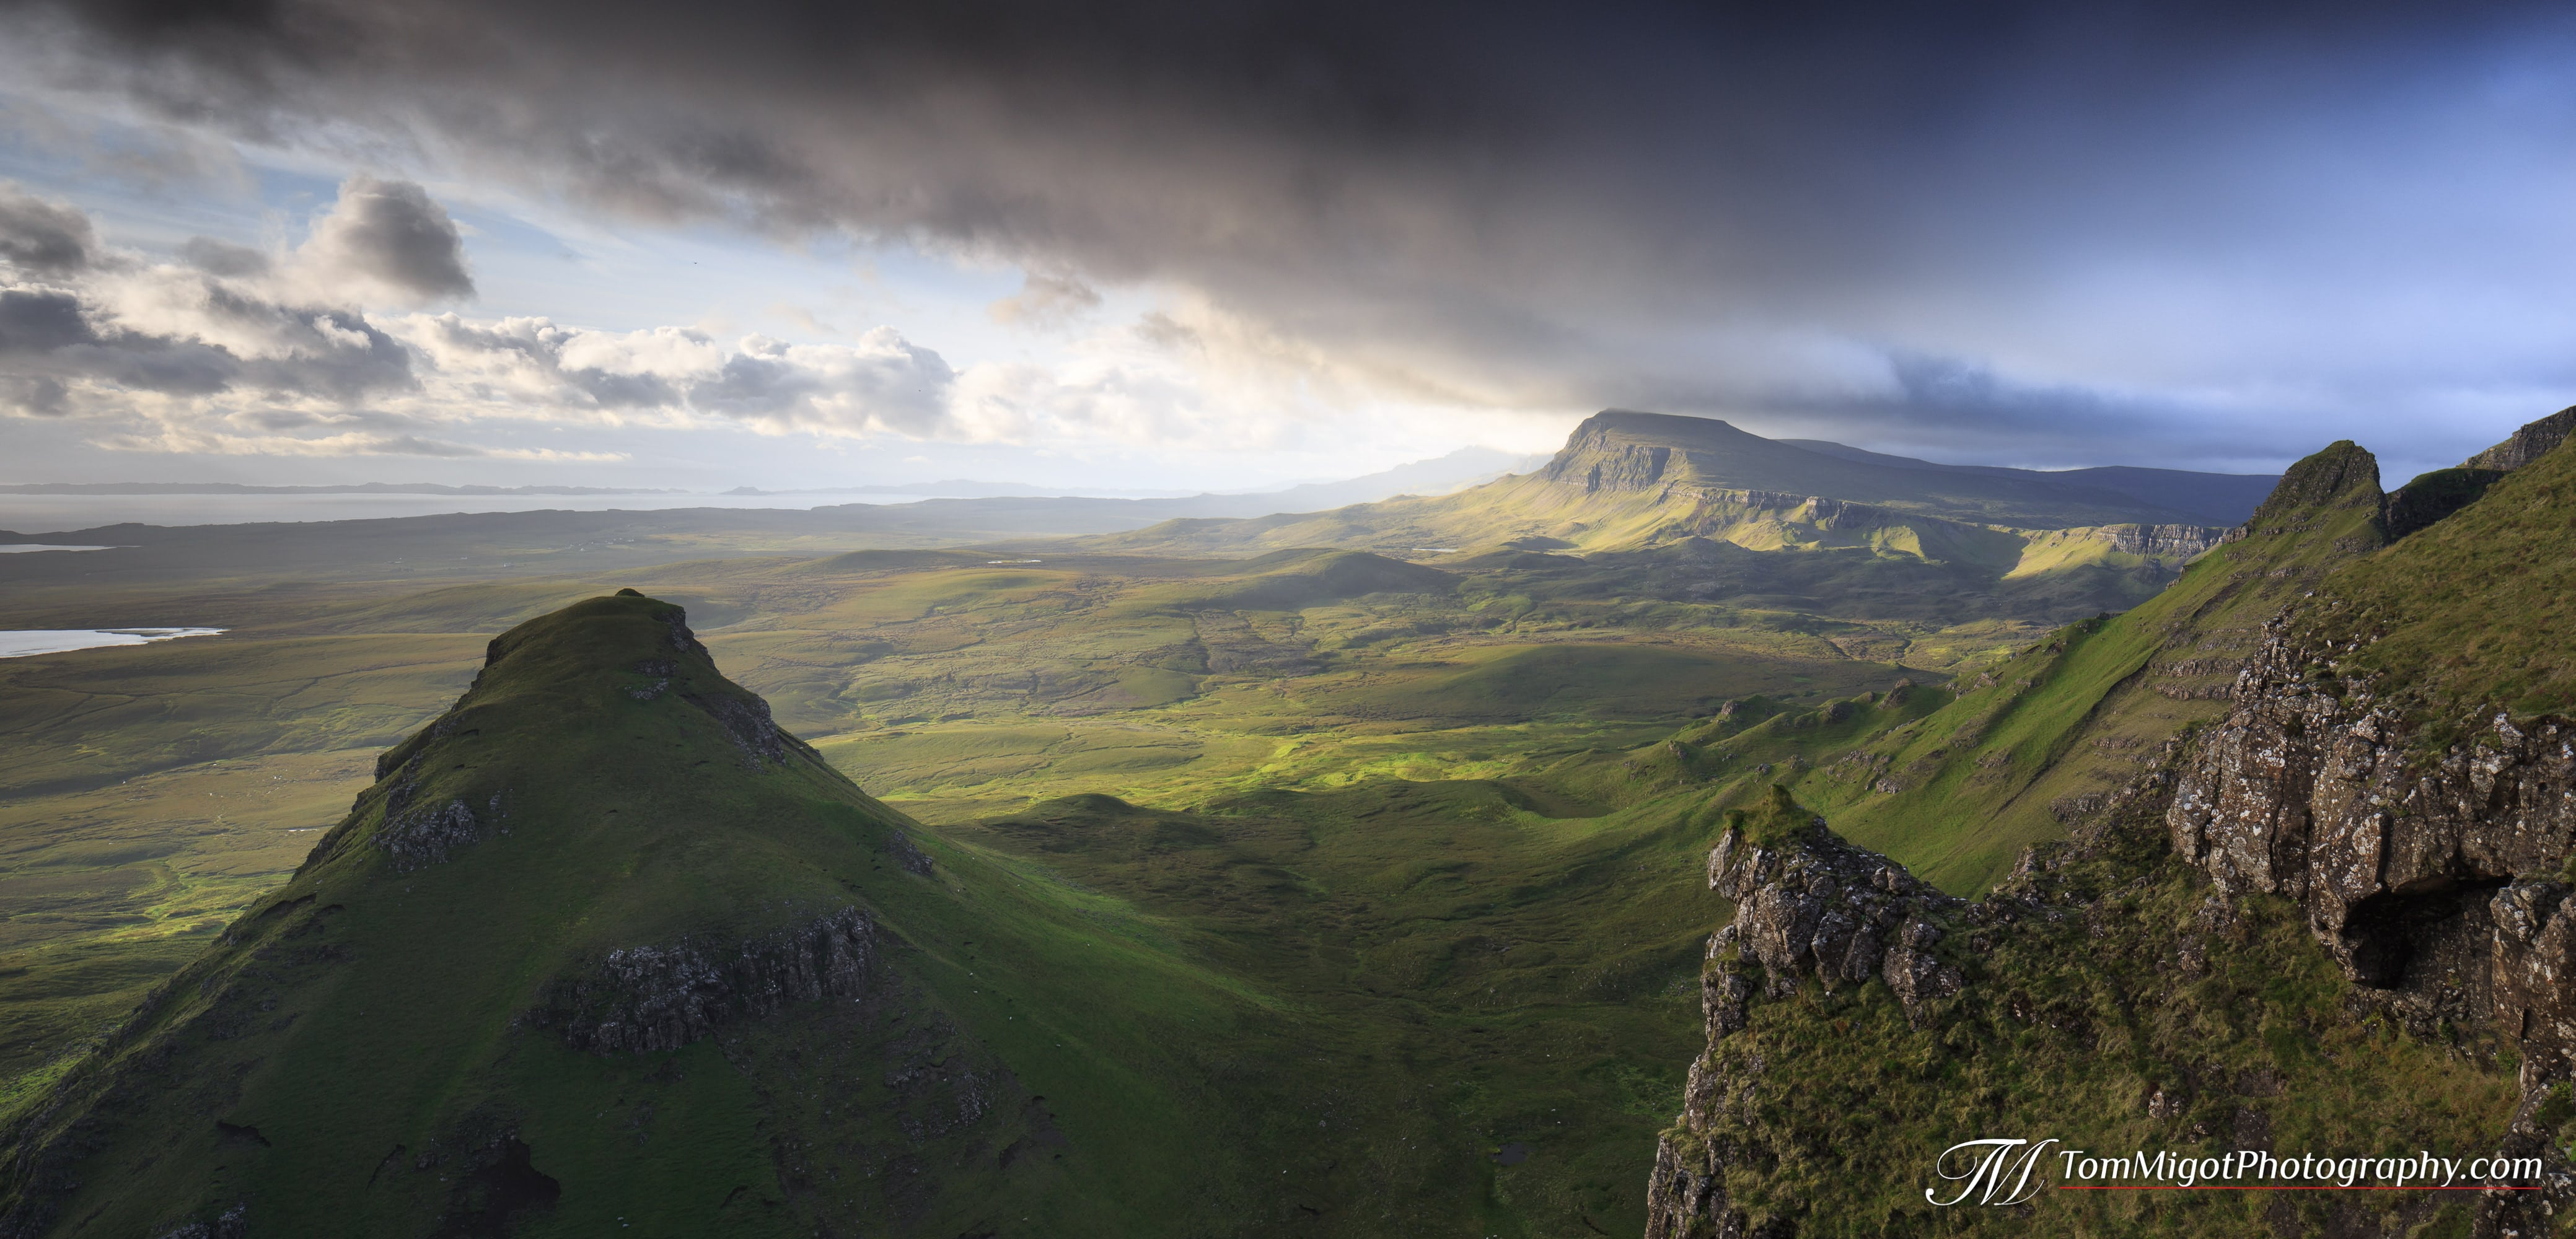 sunrise on Beinn Edra on the isle of skye in scotland